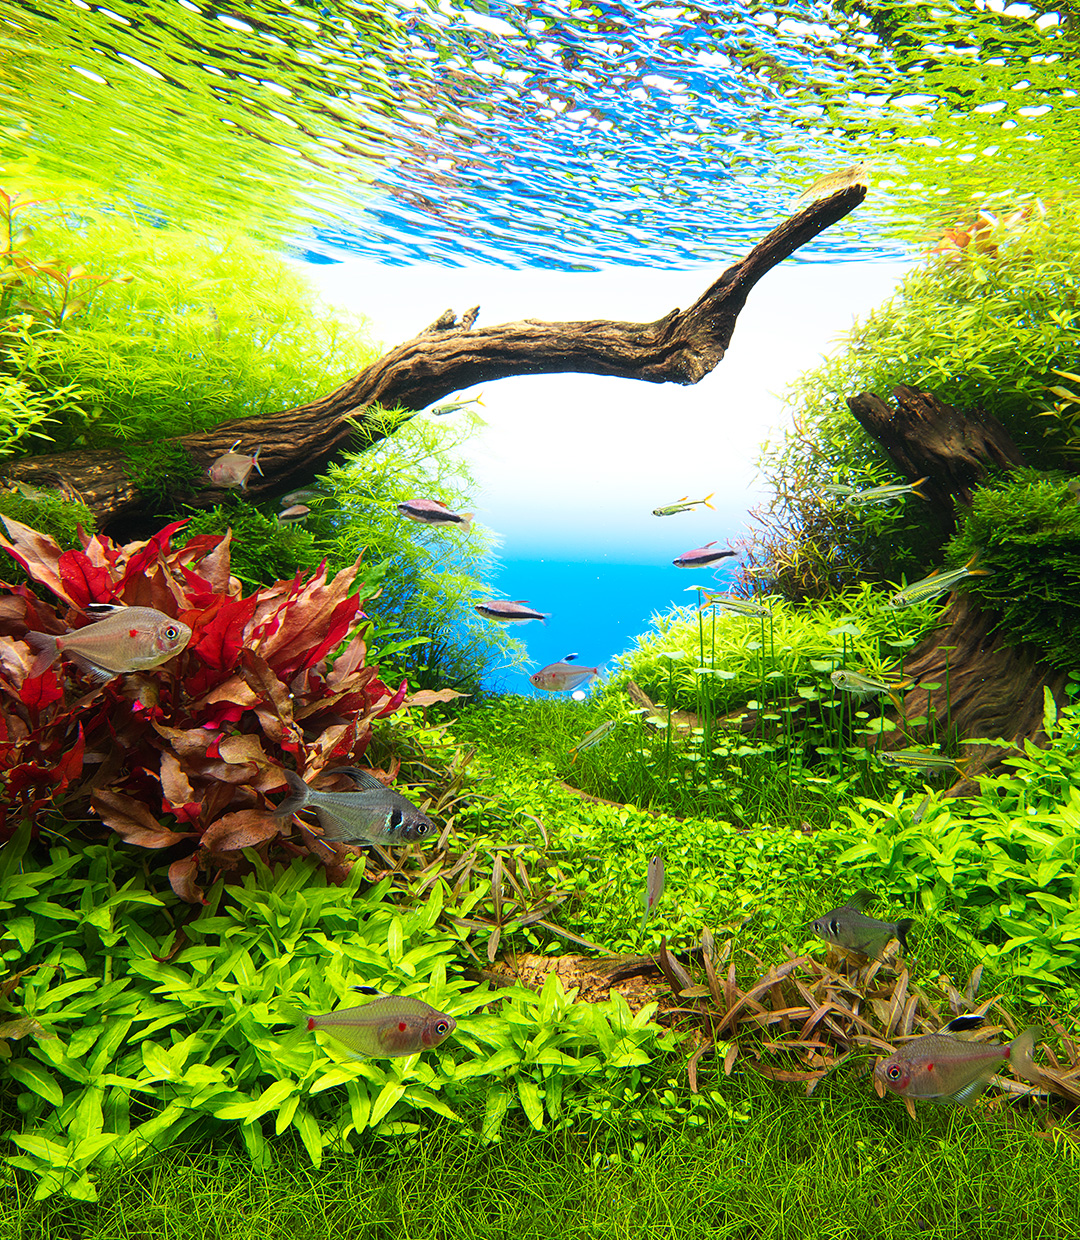 NATURE IN THE GLASS 'An Aquatic View Colorfully Decorated with Flora and Fauna'